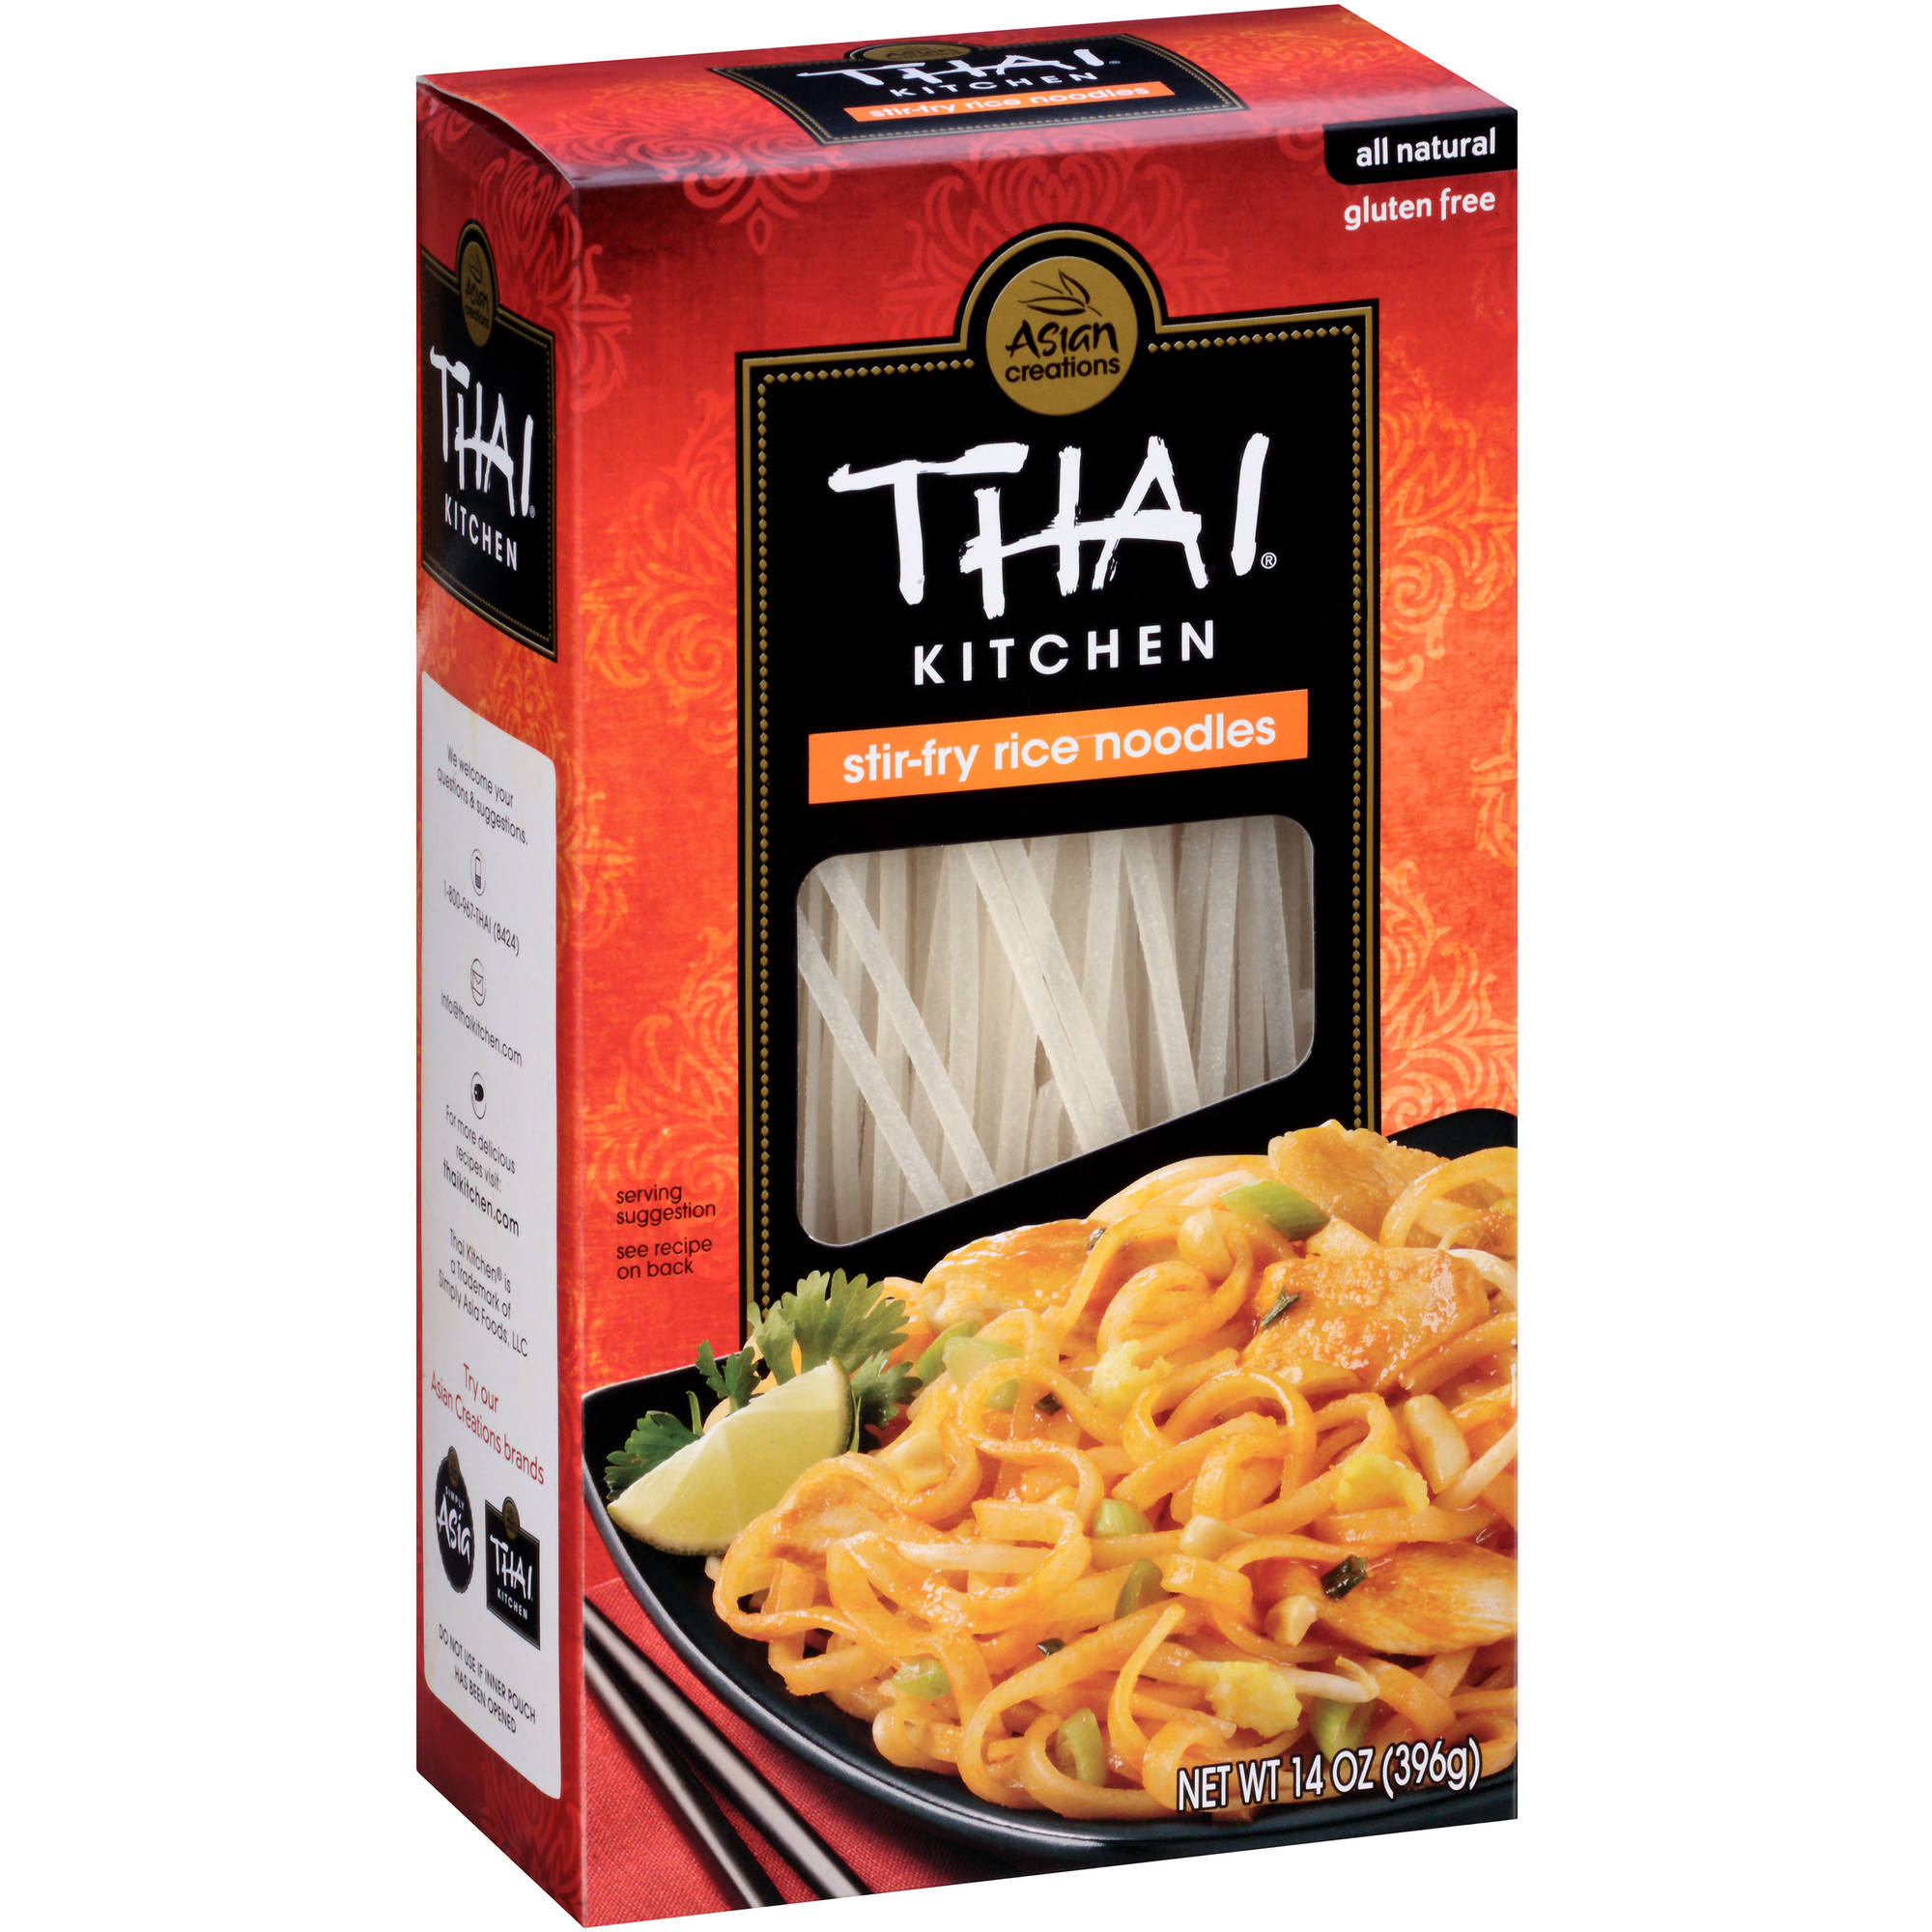 Thai Kitchen Stir-Fry Rice Noodles, 14 oz